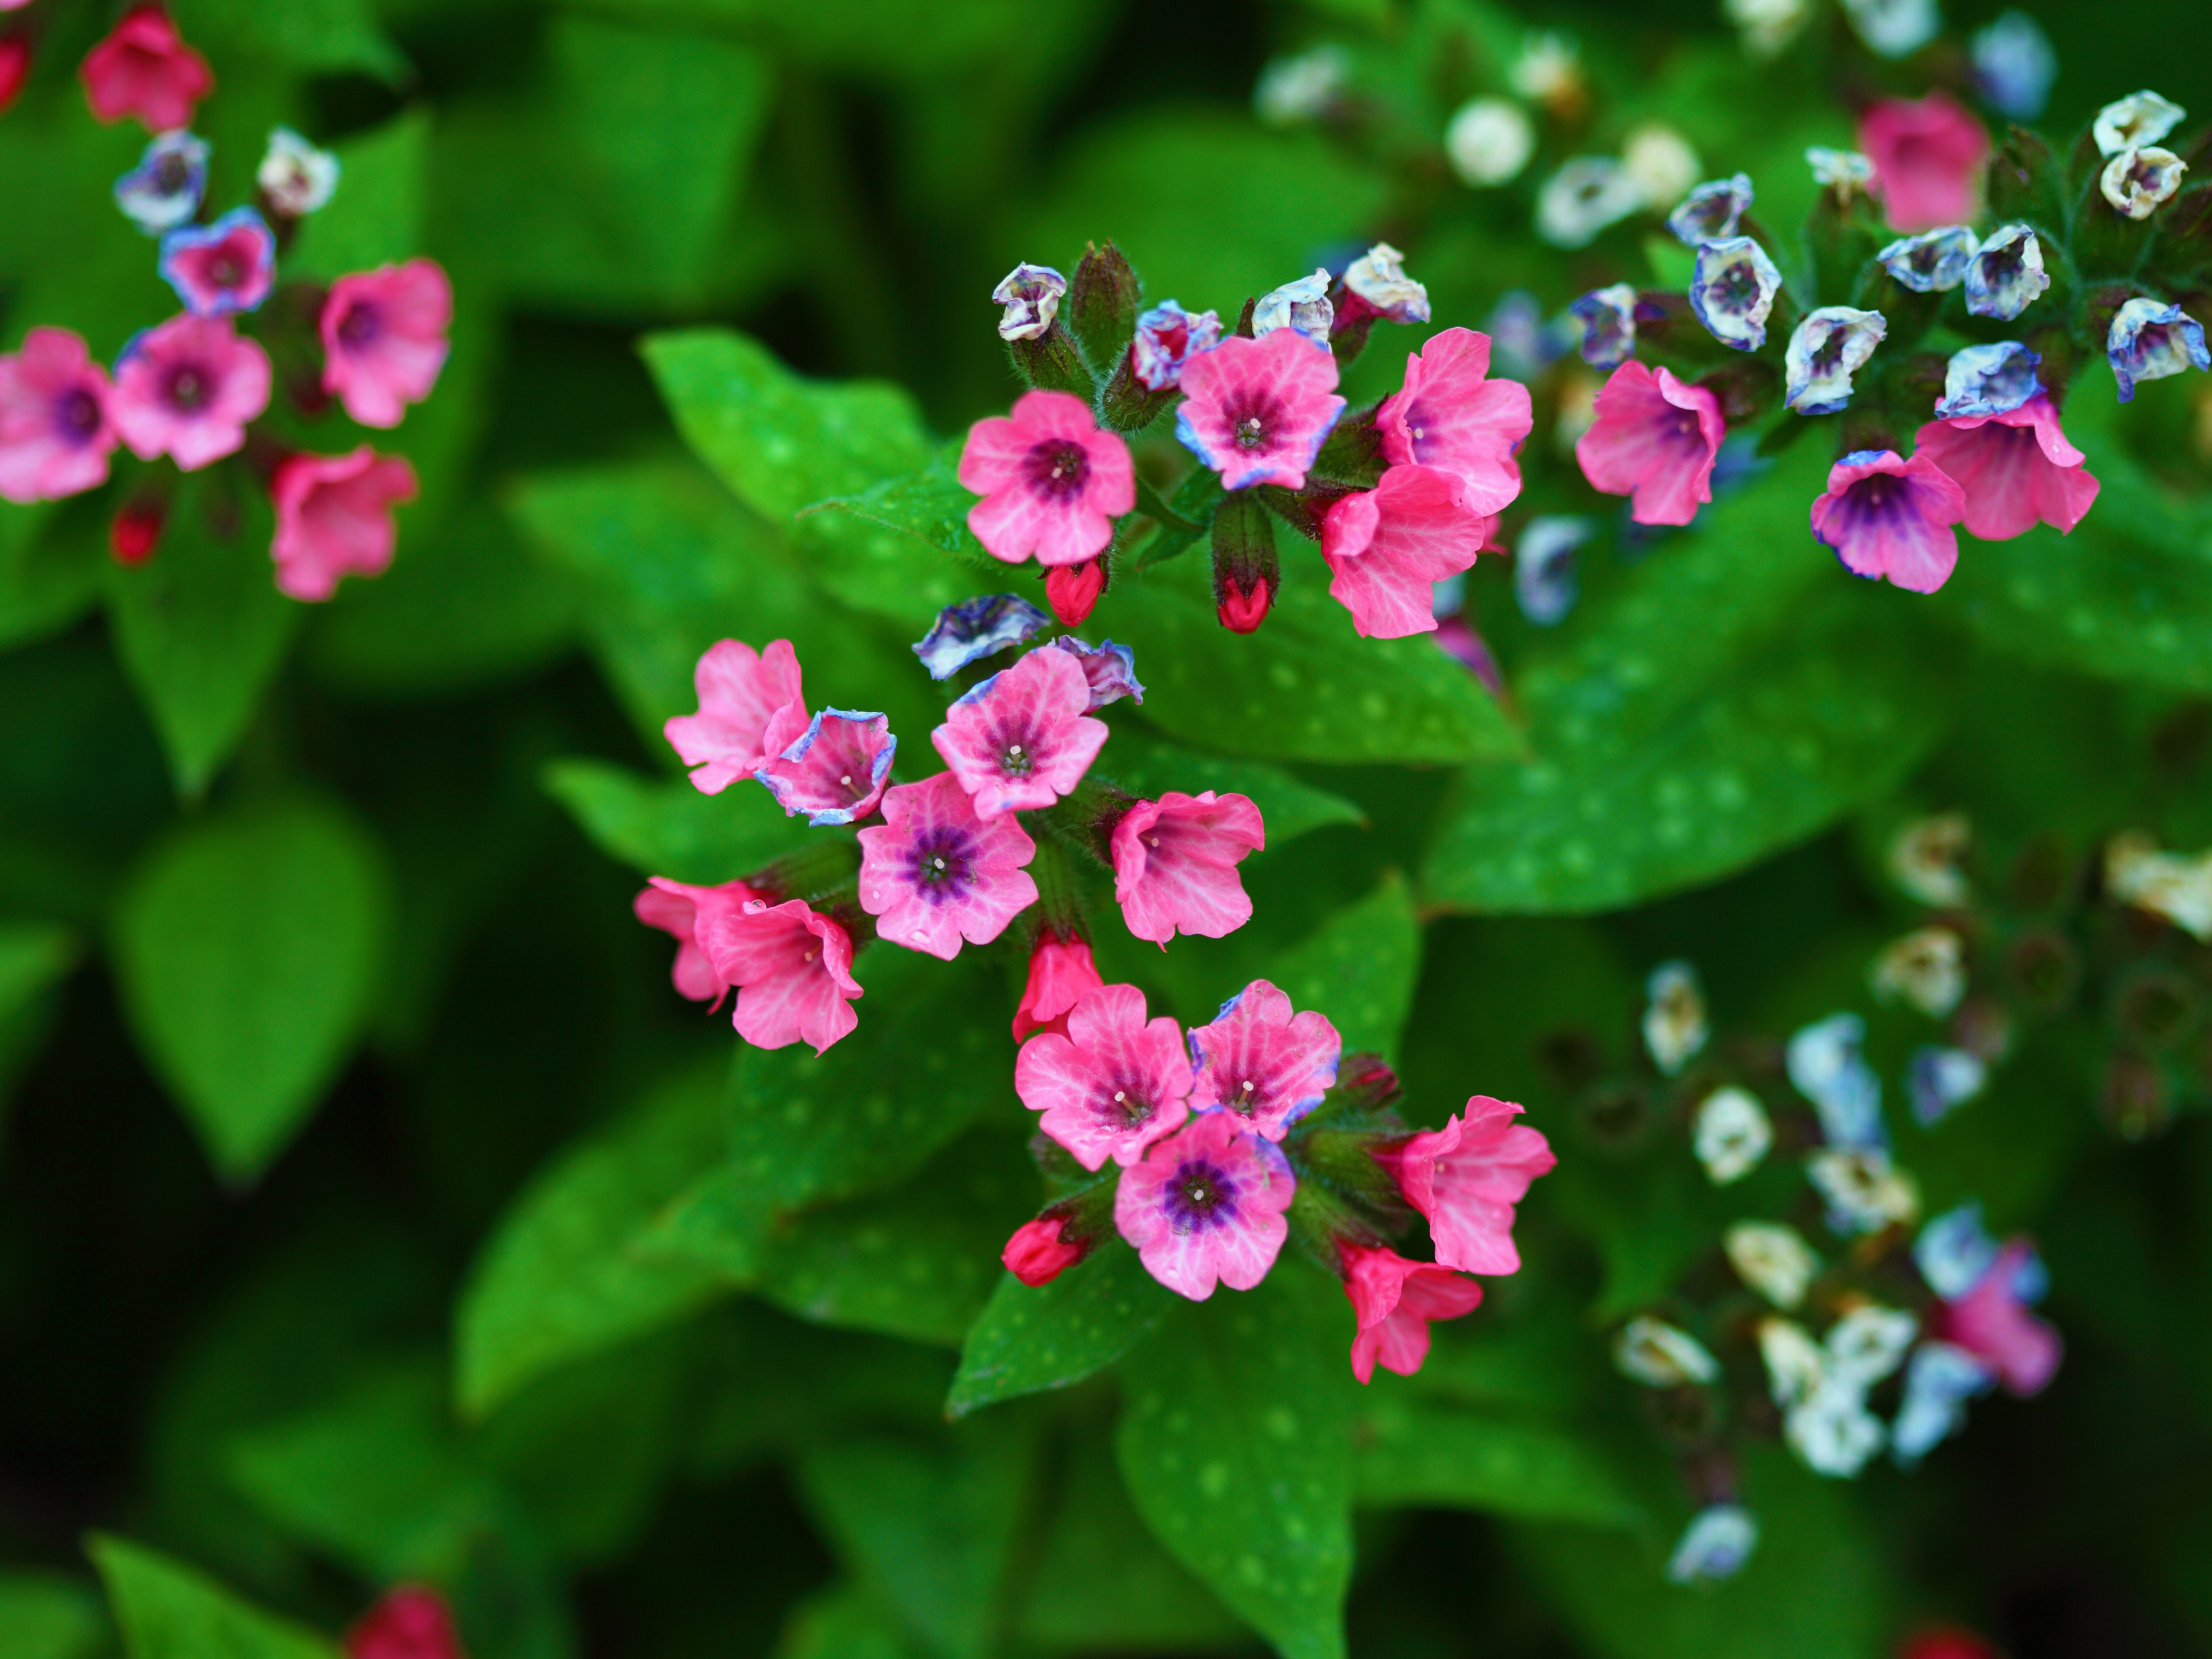 Tiny Pink And Blue Flowers 4k Ultra Hd Wallpaper Background